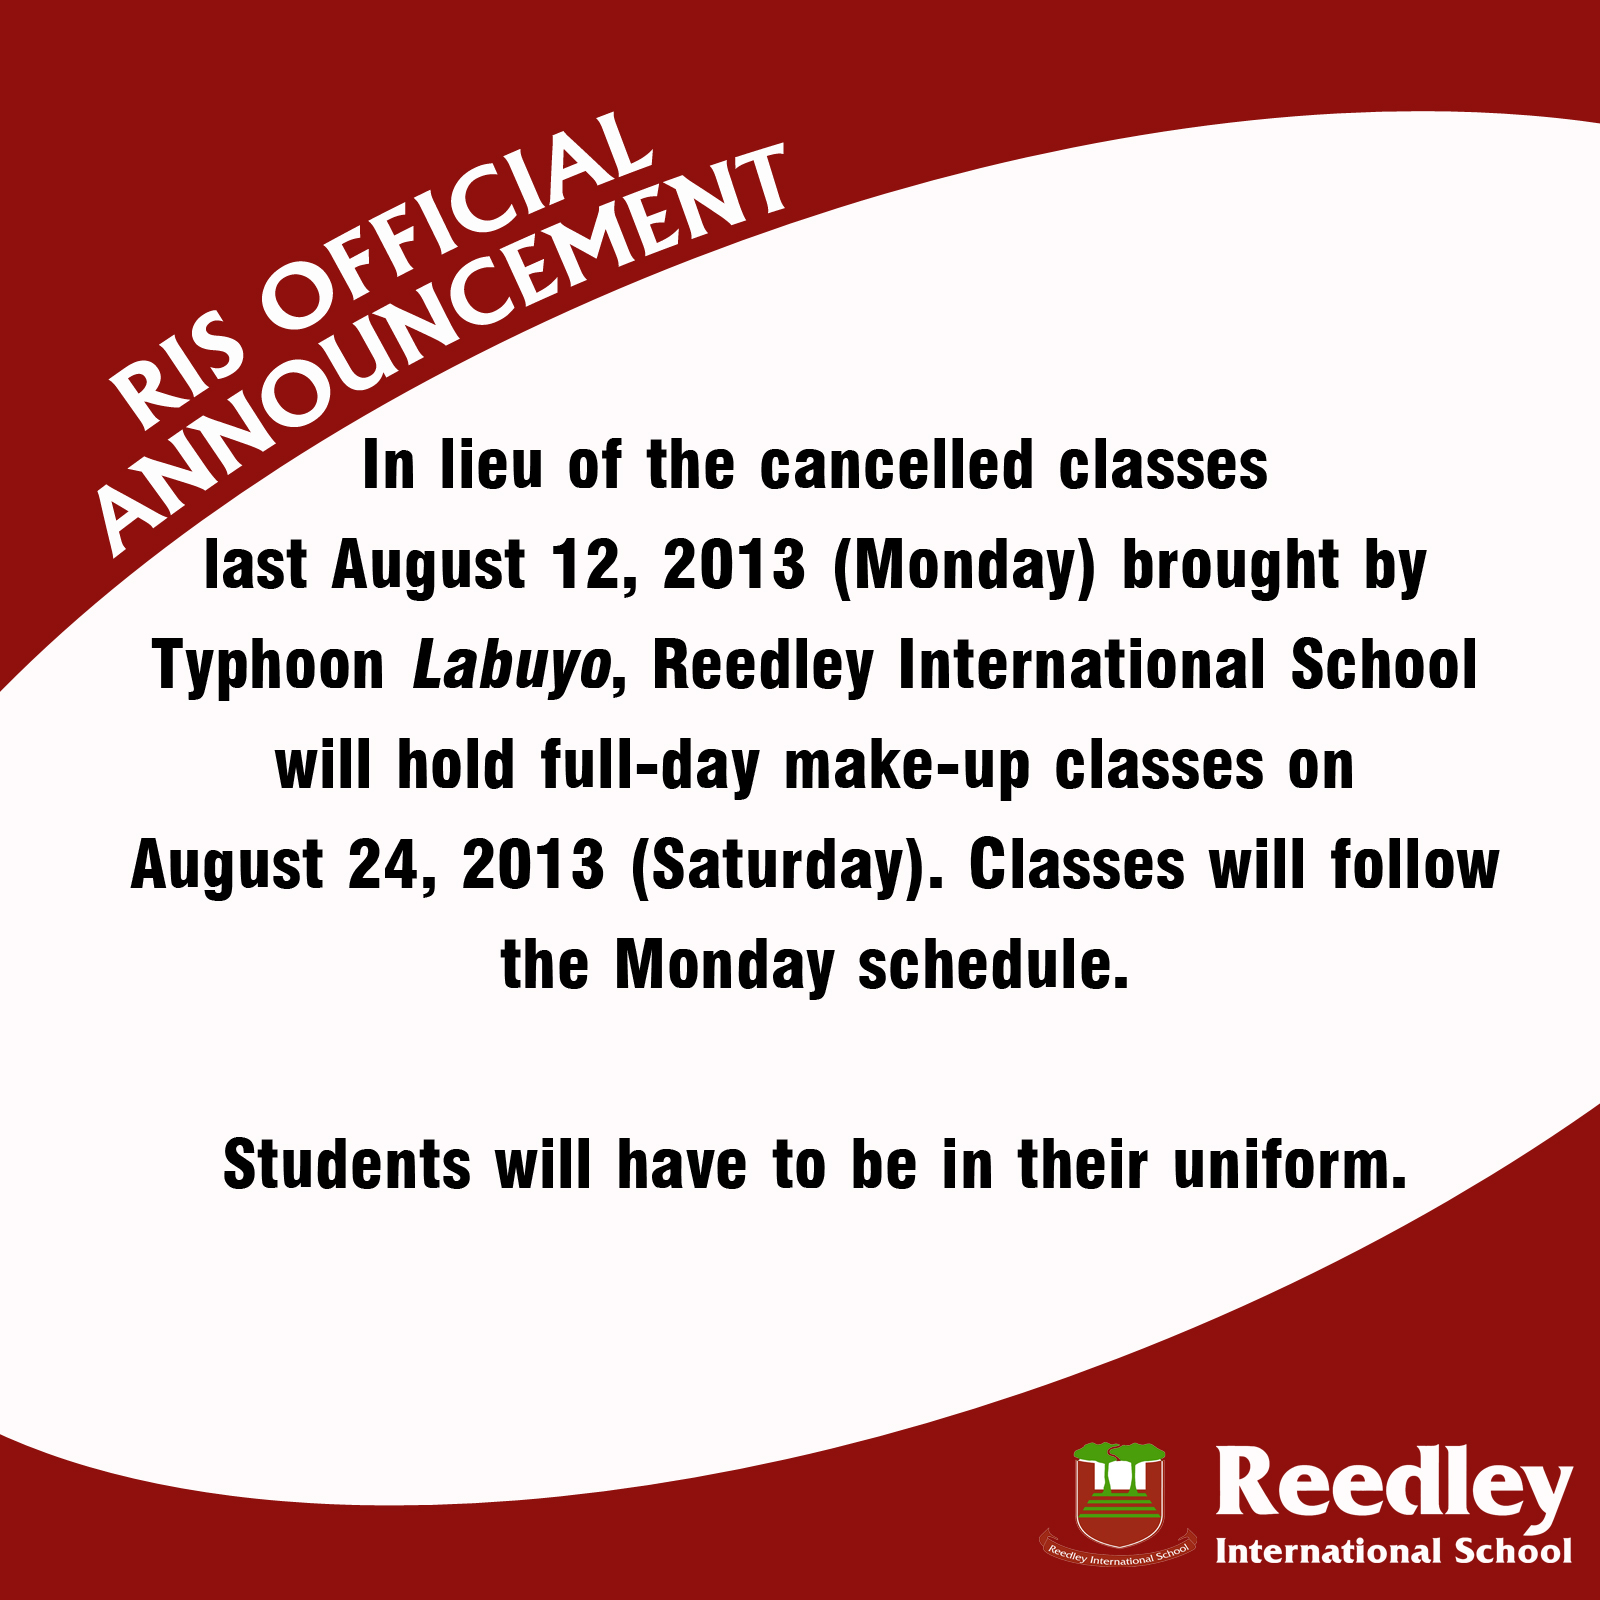 FB-Announcement-Template-make-up-classes